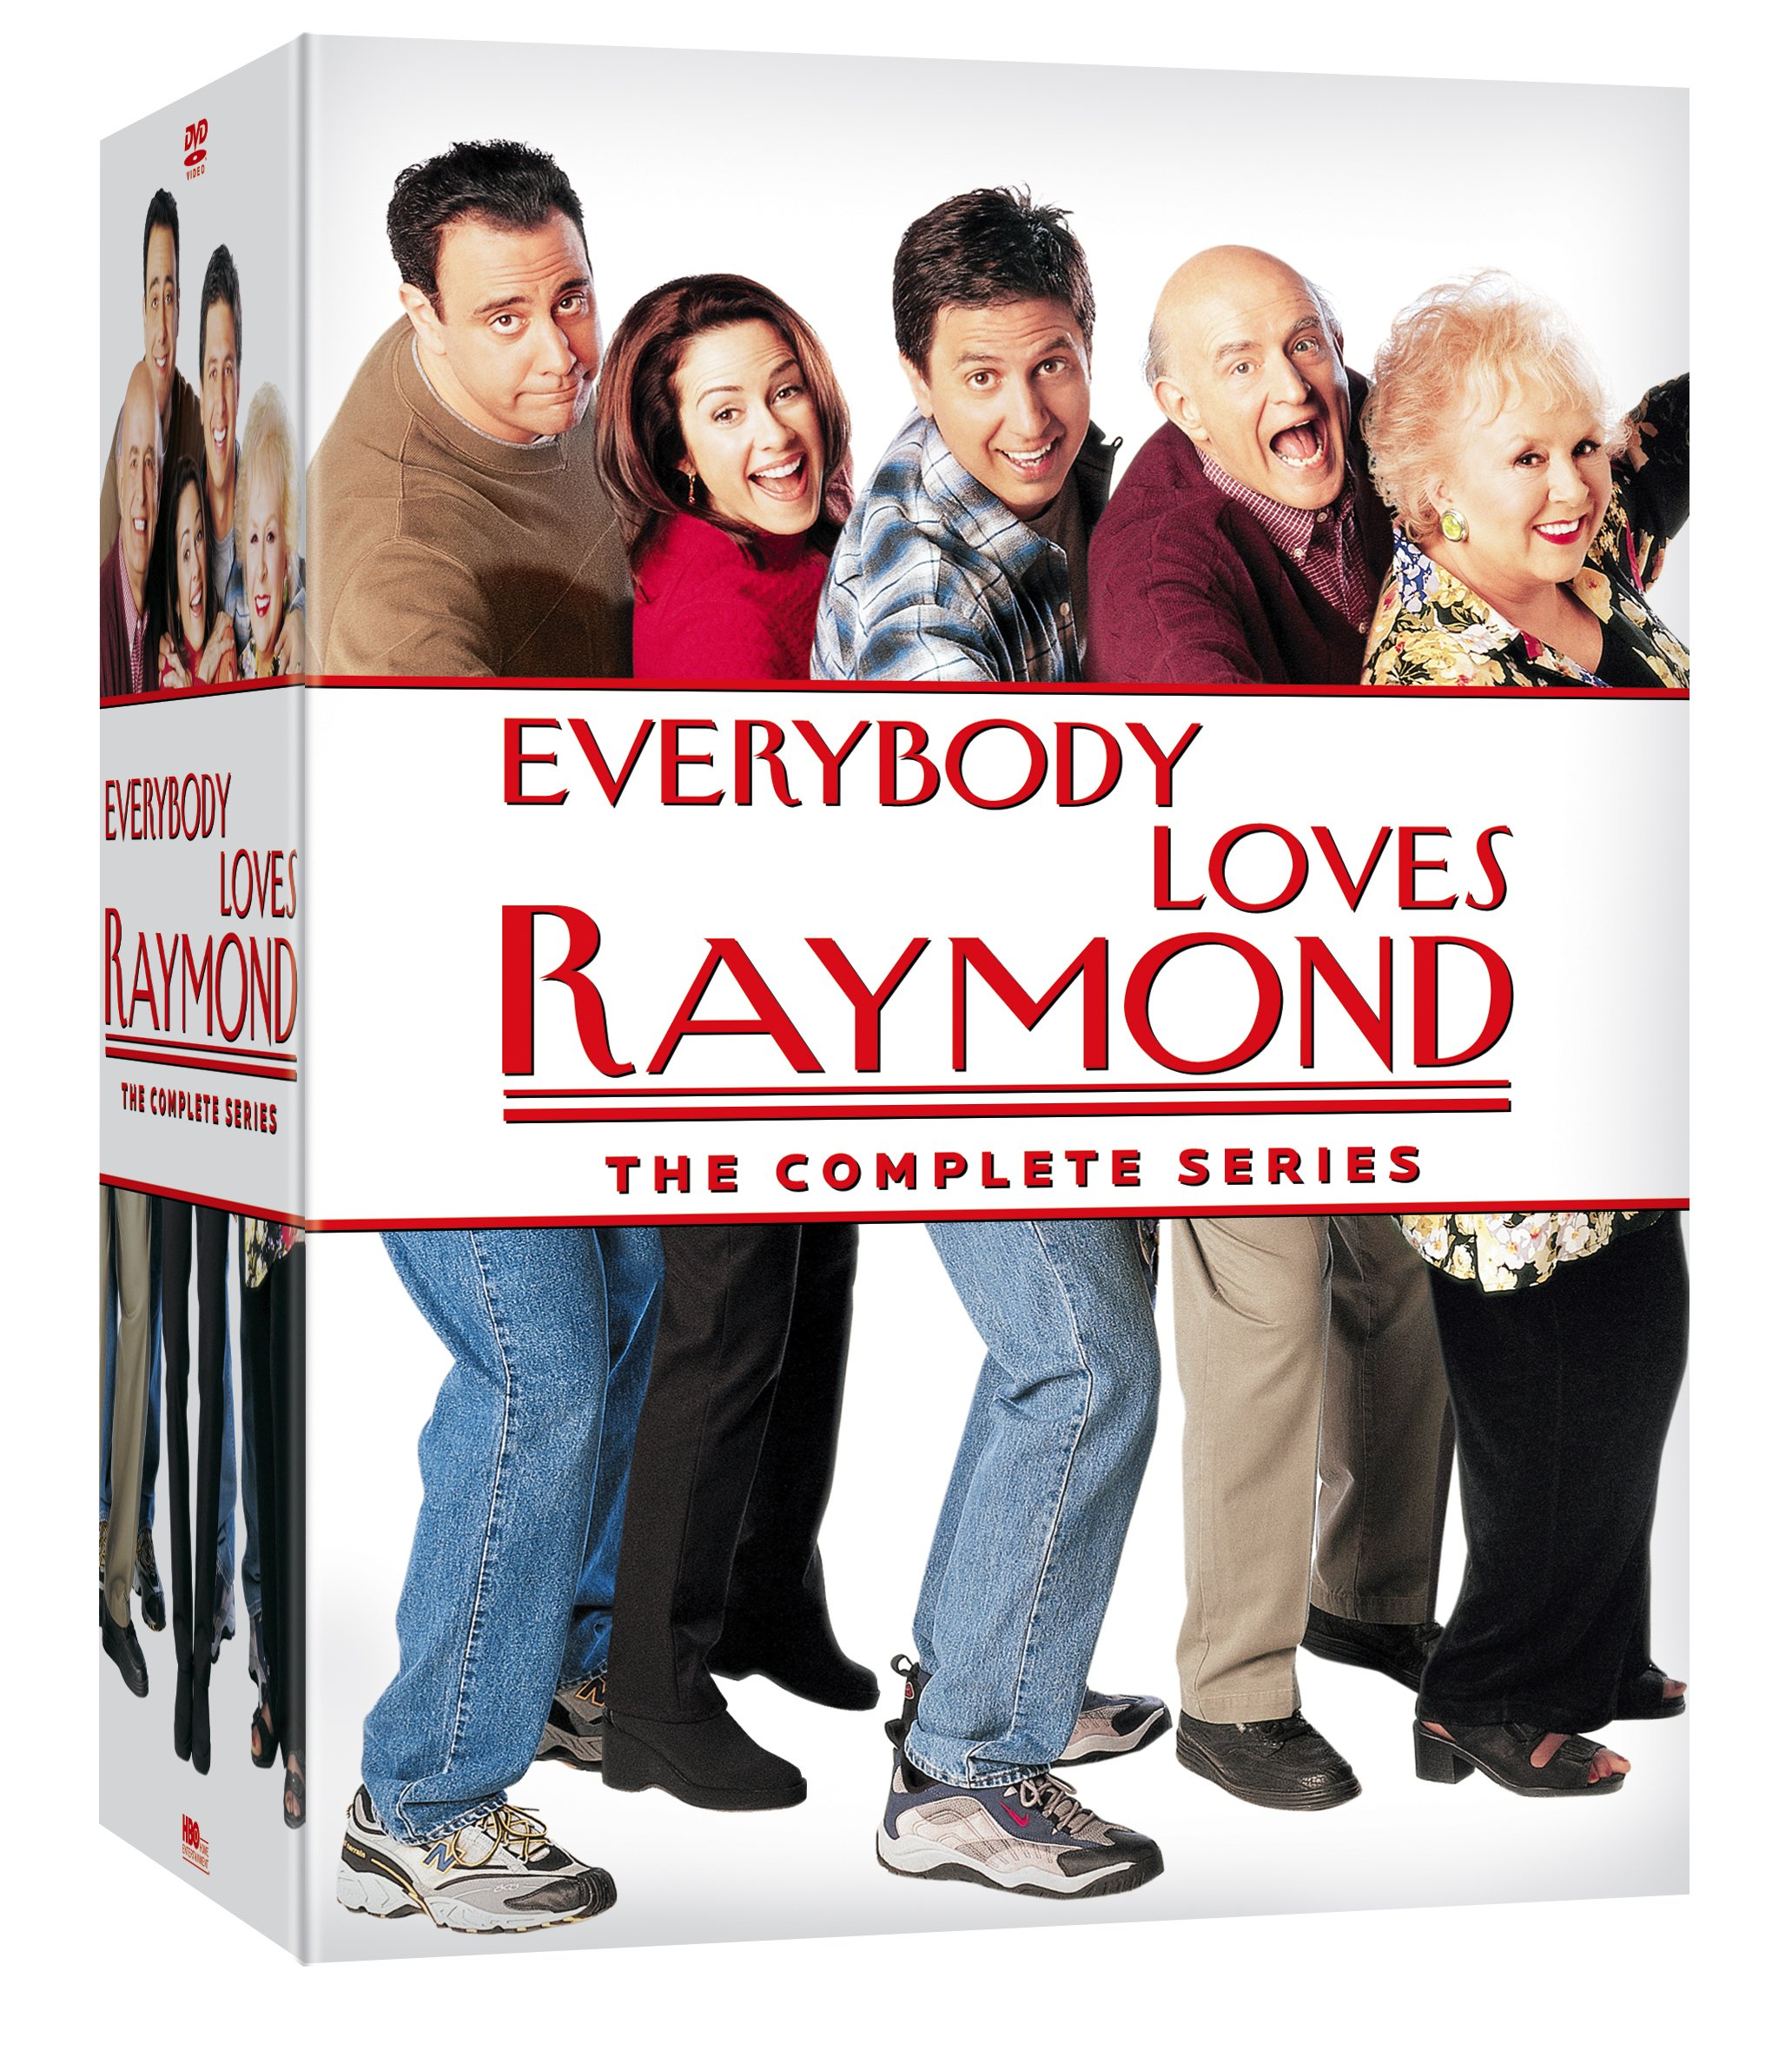 Everybody Loves Raymond: The Complete Series [DVD] [1996] [2011]